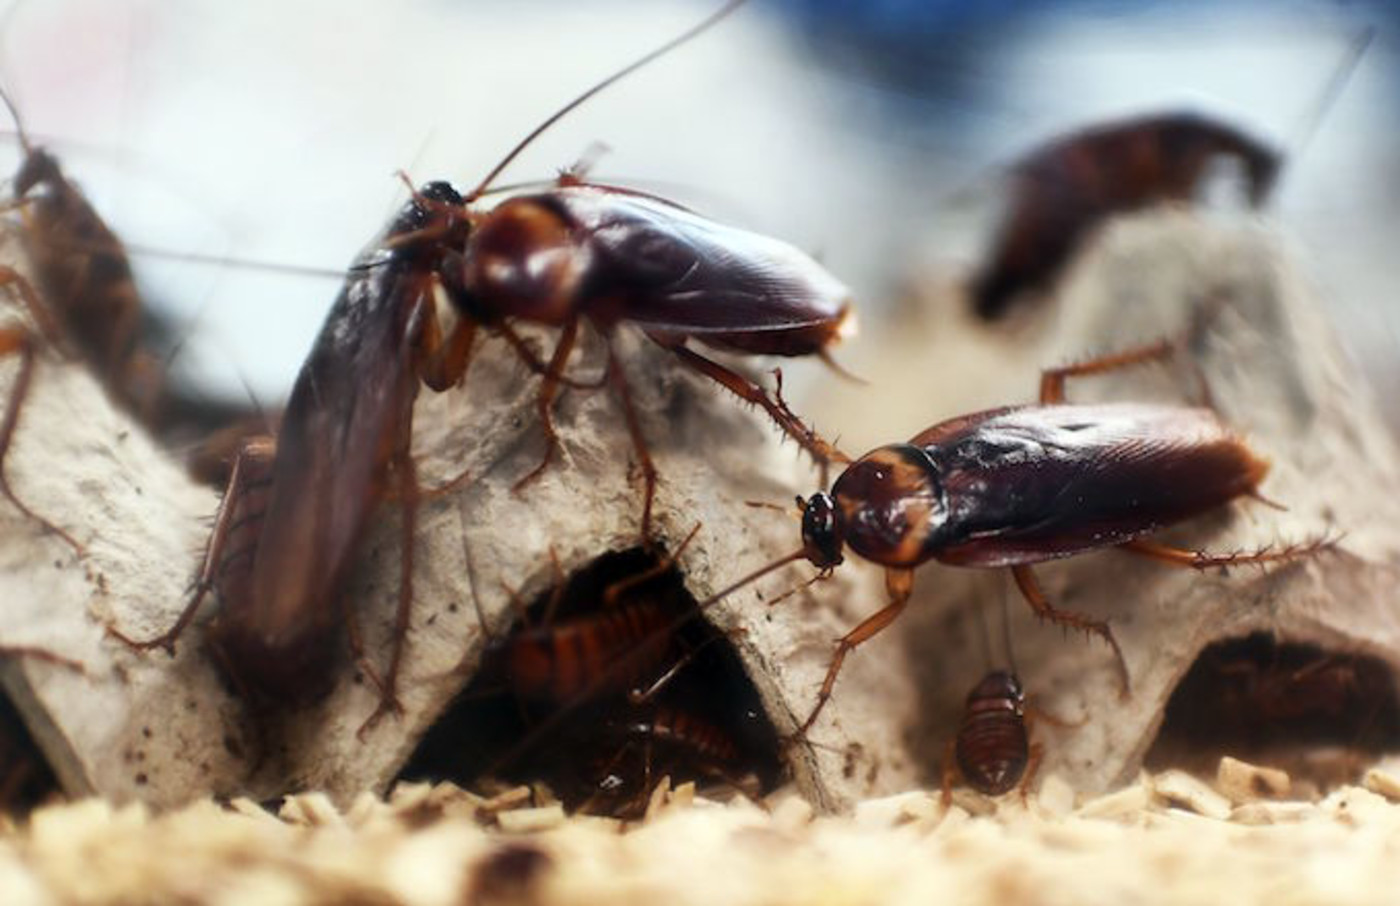 A picture taken shows cockroaches locked in a container at the laboratory.